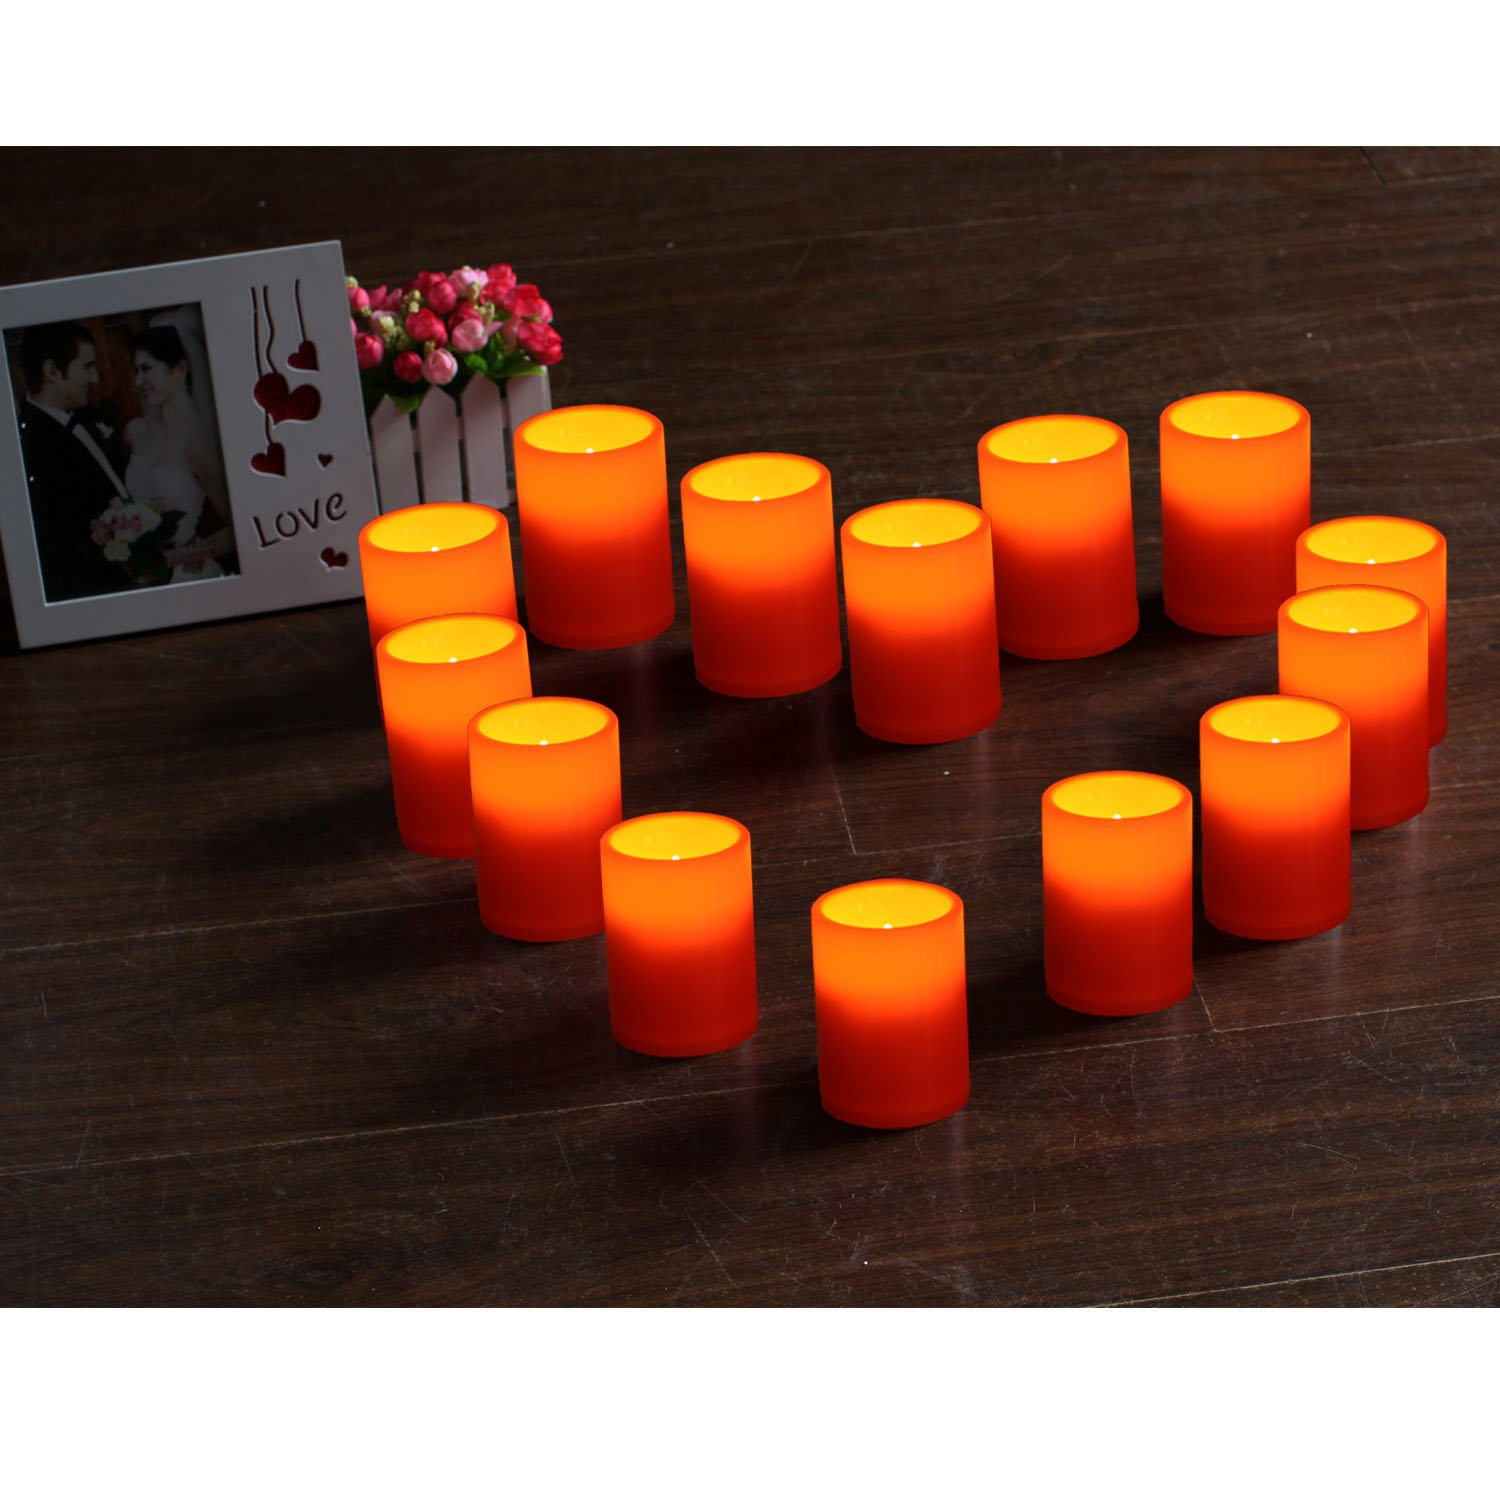 GiveU HWT13001-S2 Plastic Candle Set of 2, Pack 2, Ivory